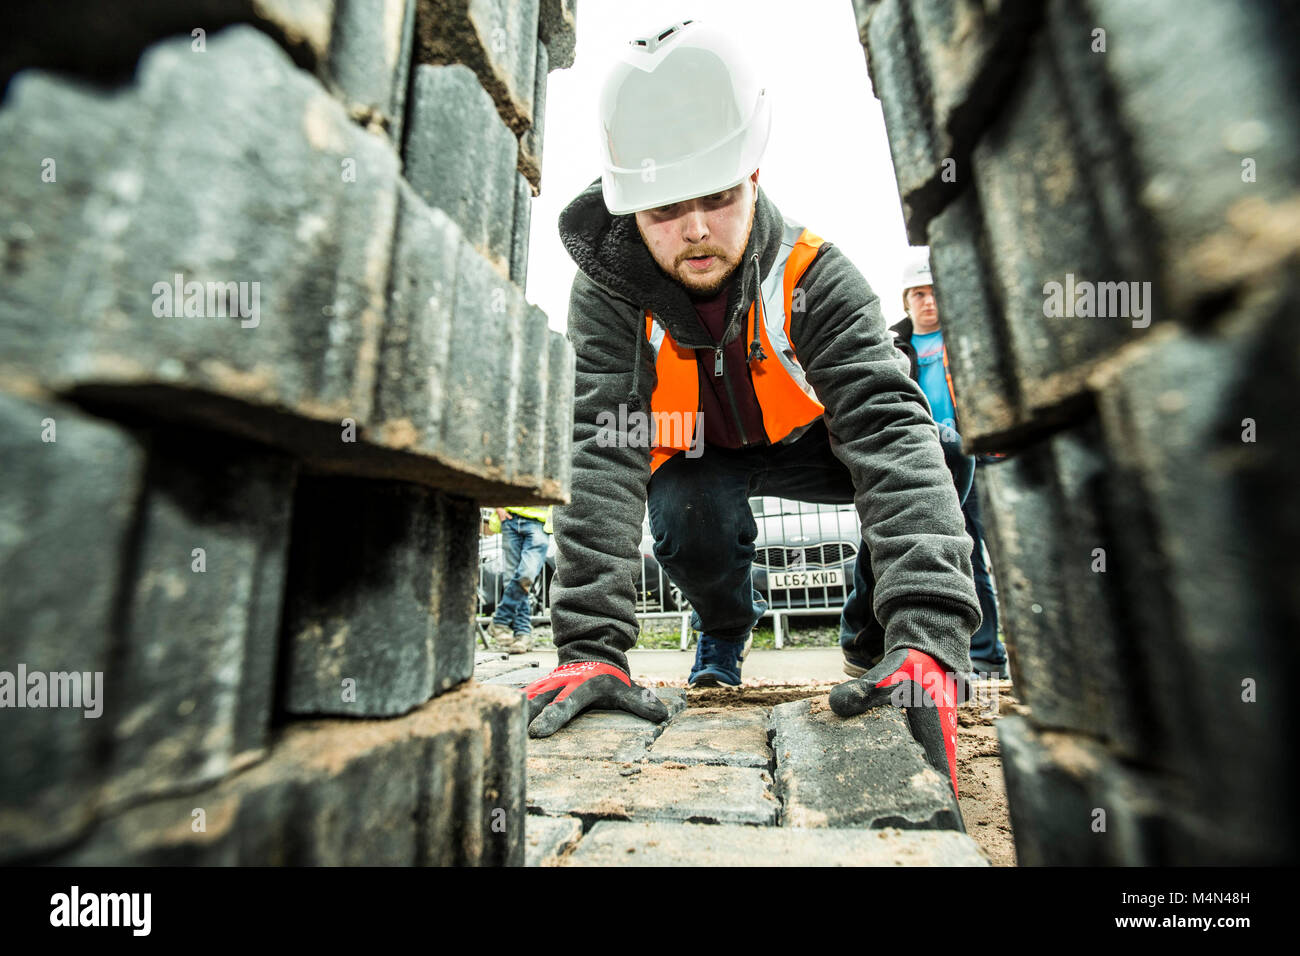 Apprentice learning how to lay bricks - Stock Image